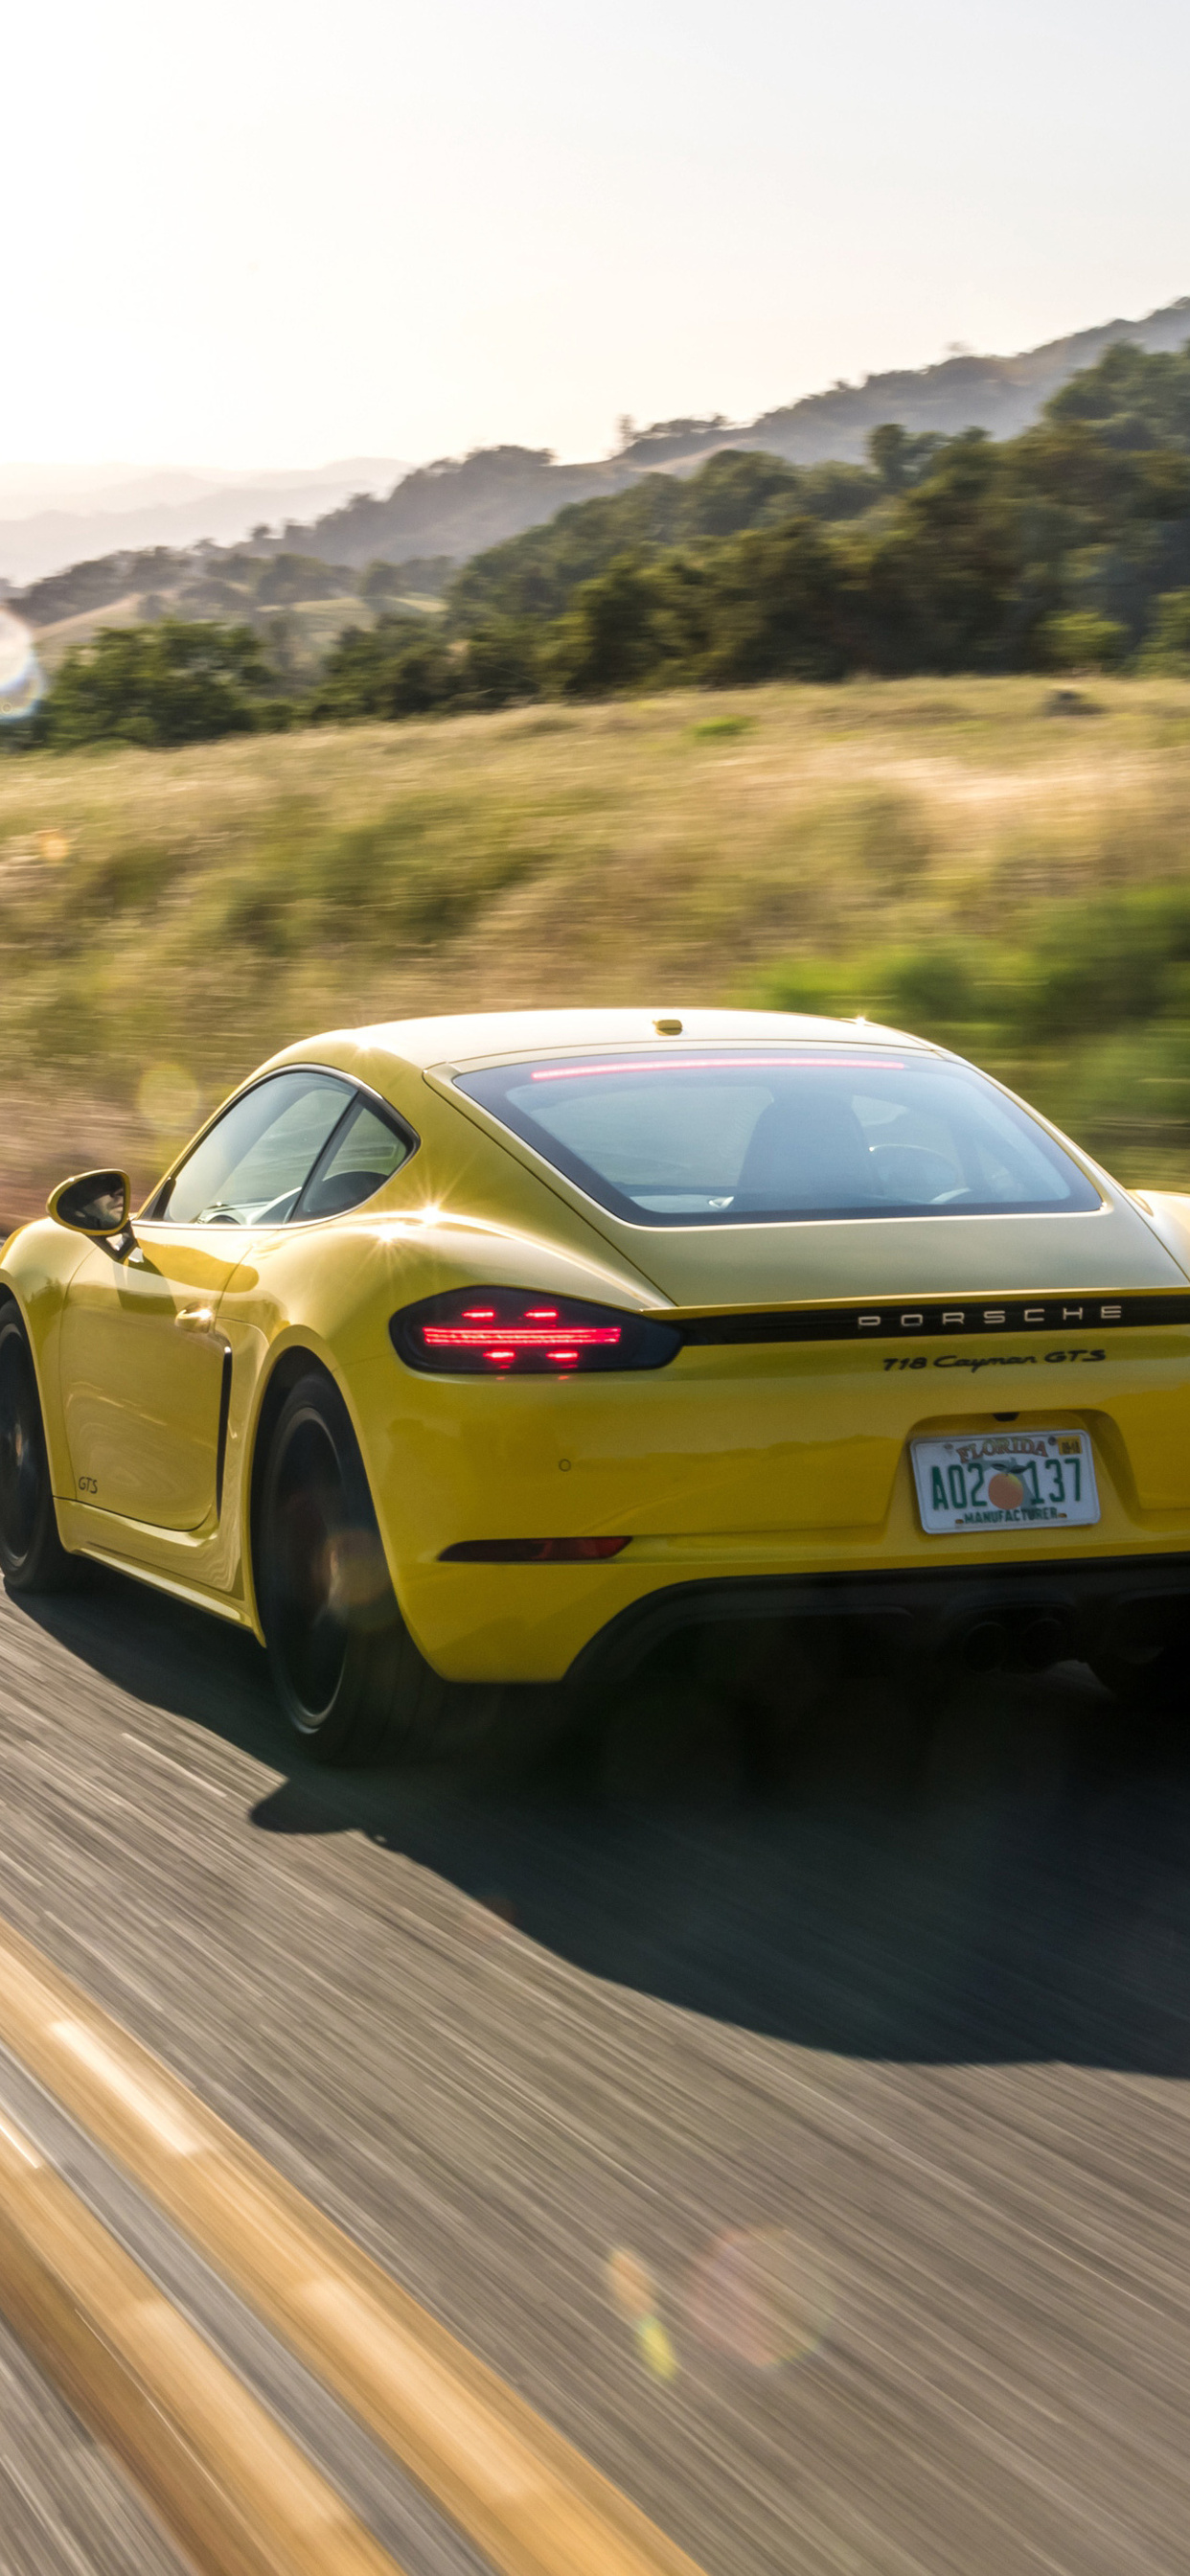 1242x2688 Porsche 718 Cayman Gts 2019 Iphone Xs Max Hd 4k Wallpapers Images Backgrounds Photos And Pictures